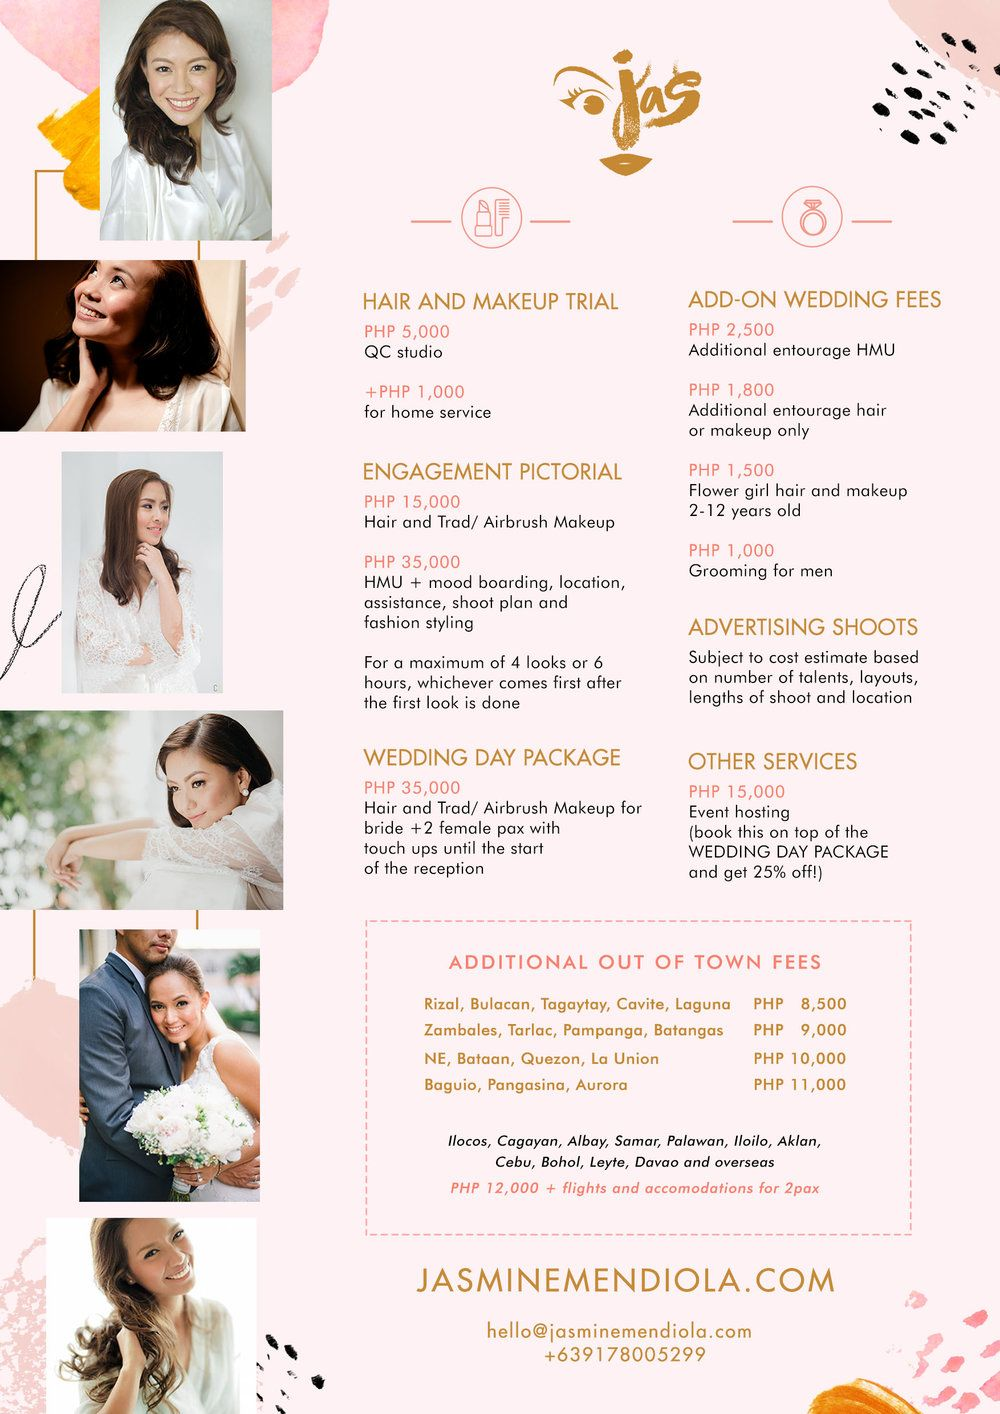 Perfect Hair And Makeup For Wedding Cost Philippines And Description In 2021 Wedding Costs Wedding Makeup Affordable Wedding Packages